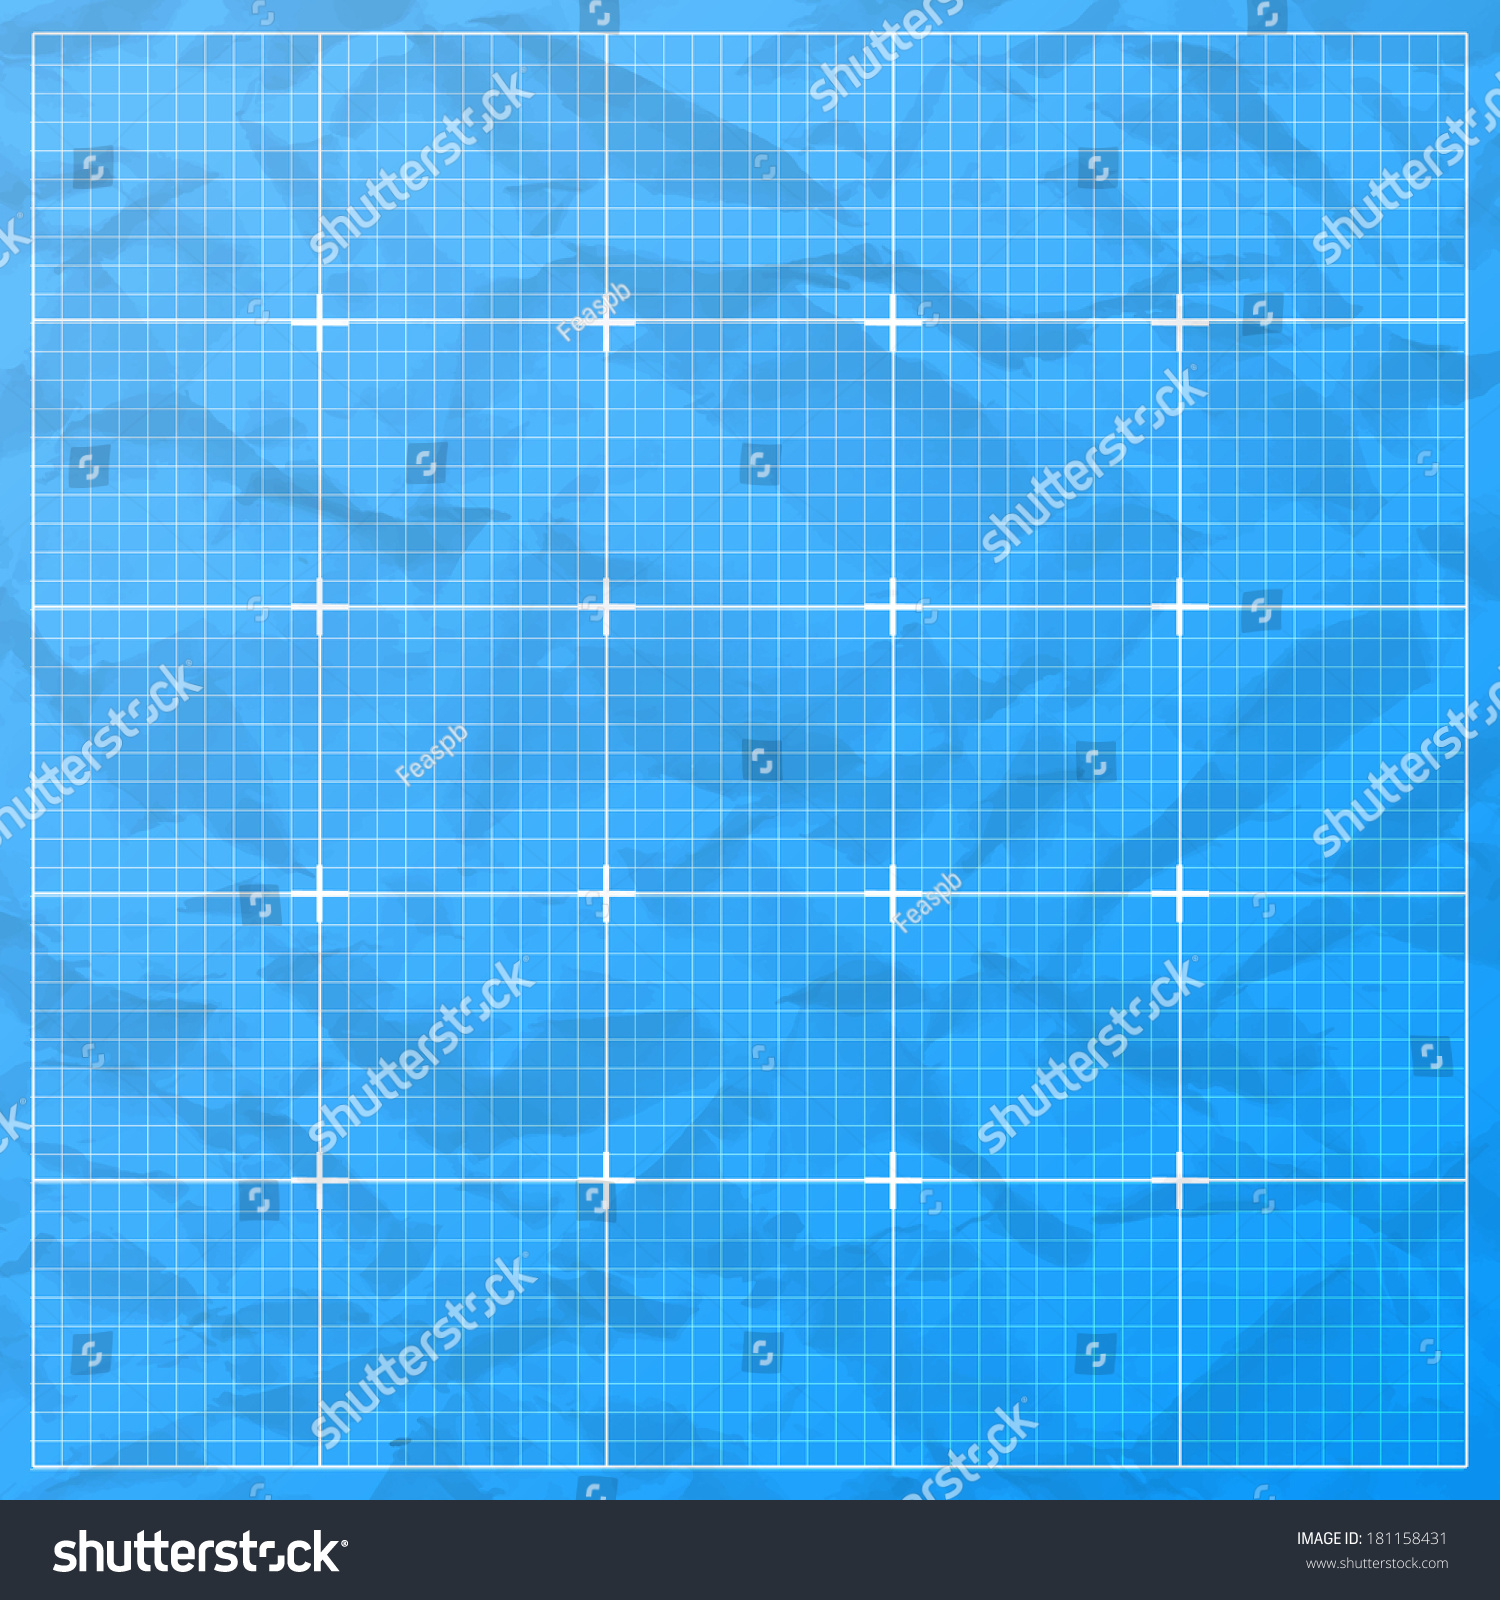 Blueprint background texture stock vector 181158431 shutterstock blueprint background texture malvernweather Gallery